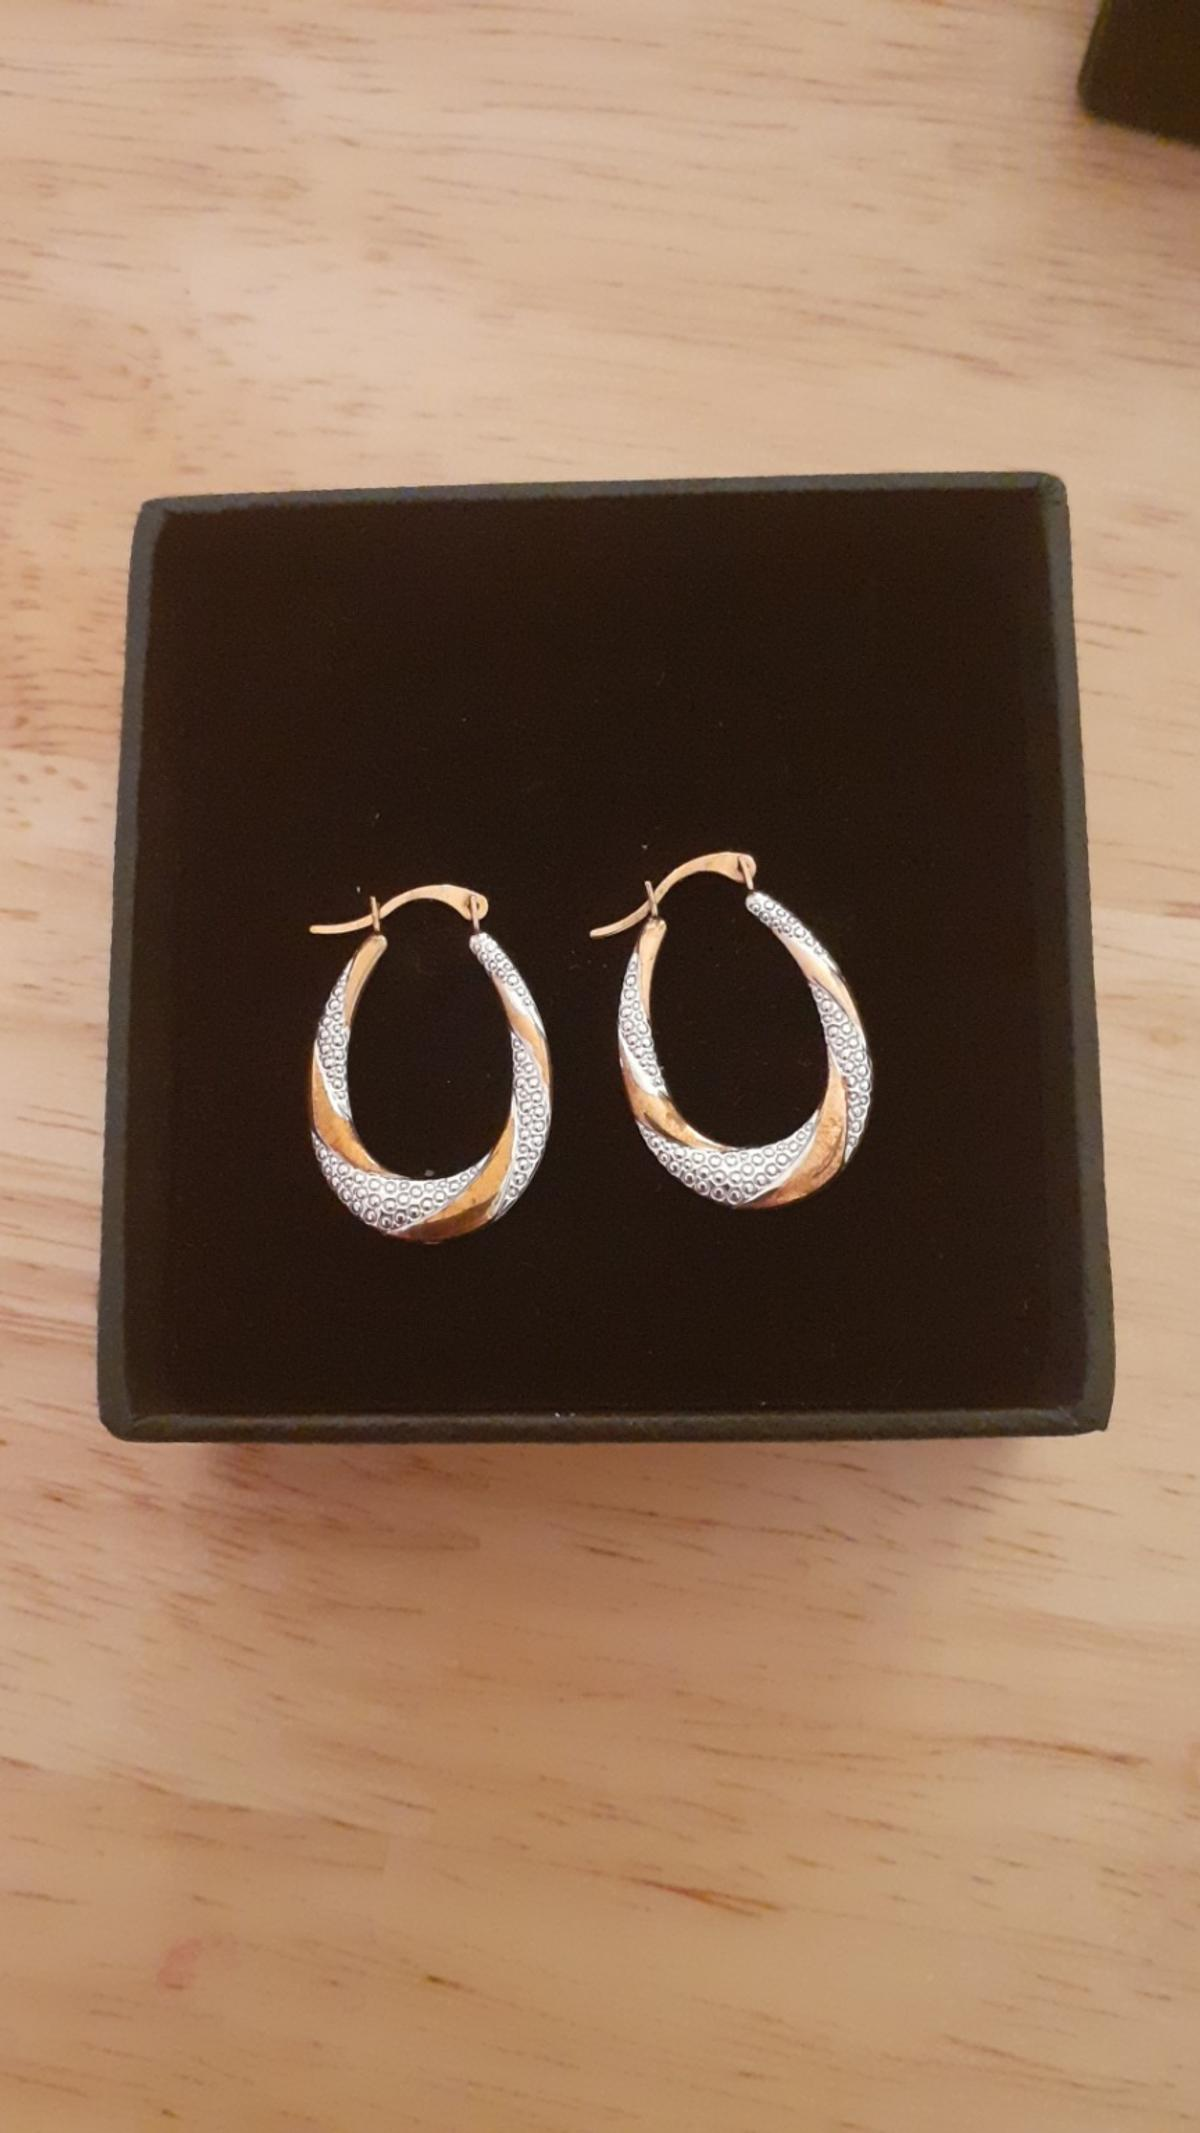 gold earrings present for Christmas but thay were to old for my daughter